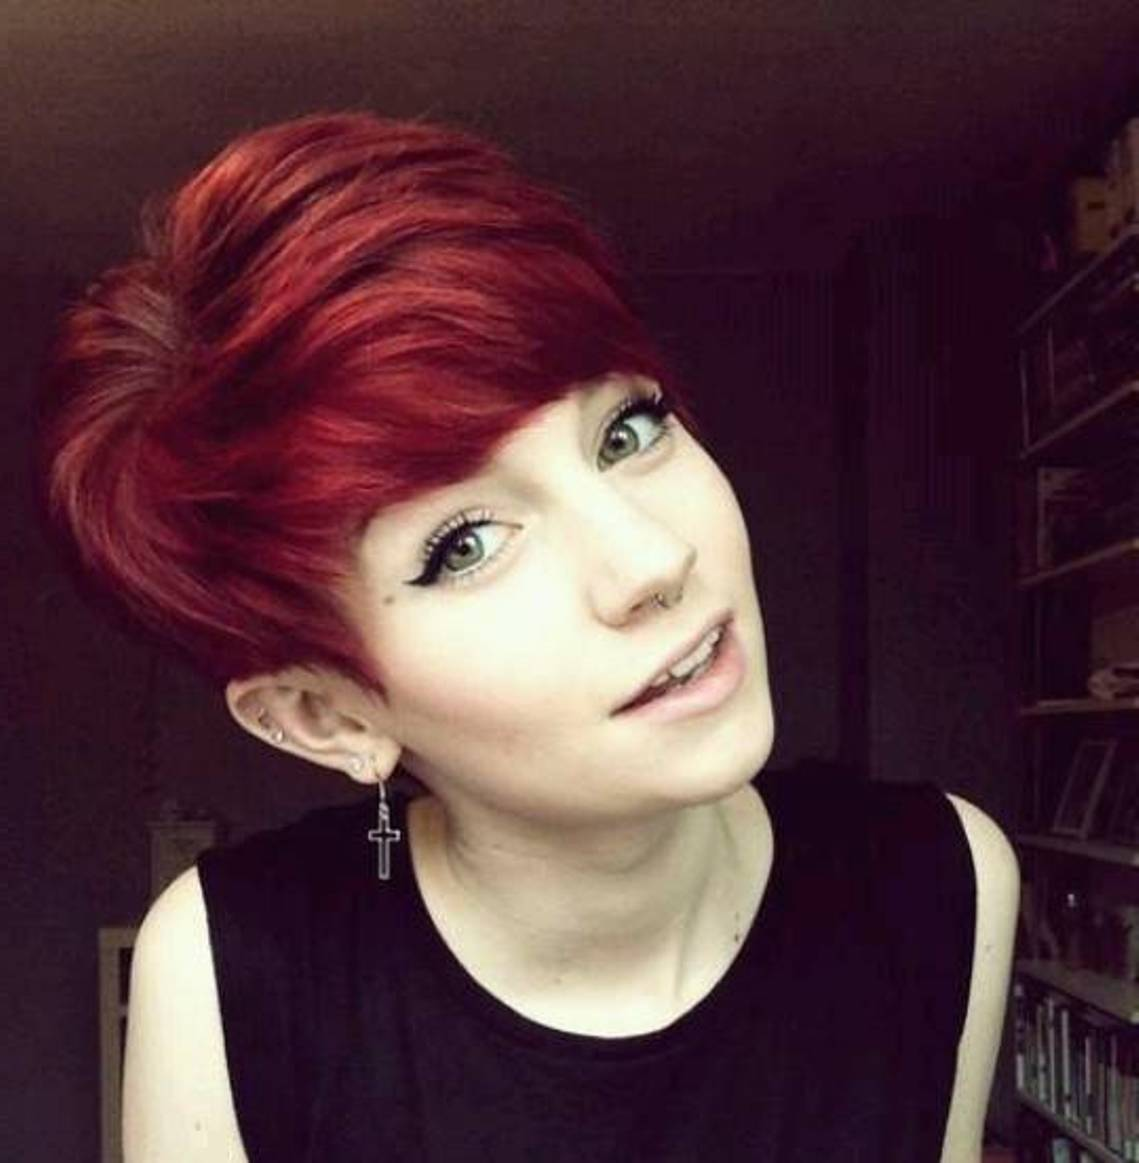 red hair short styles 24 really hairstyles styles weekly 2737 | Classic pixie cut1